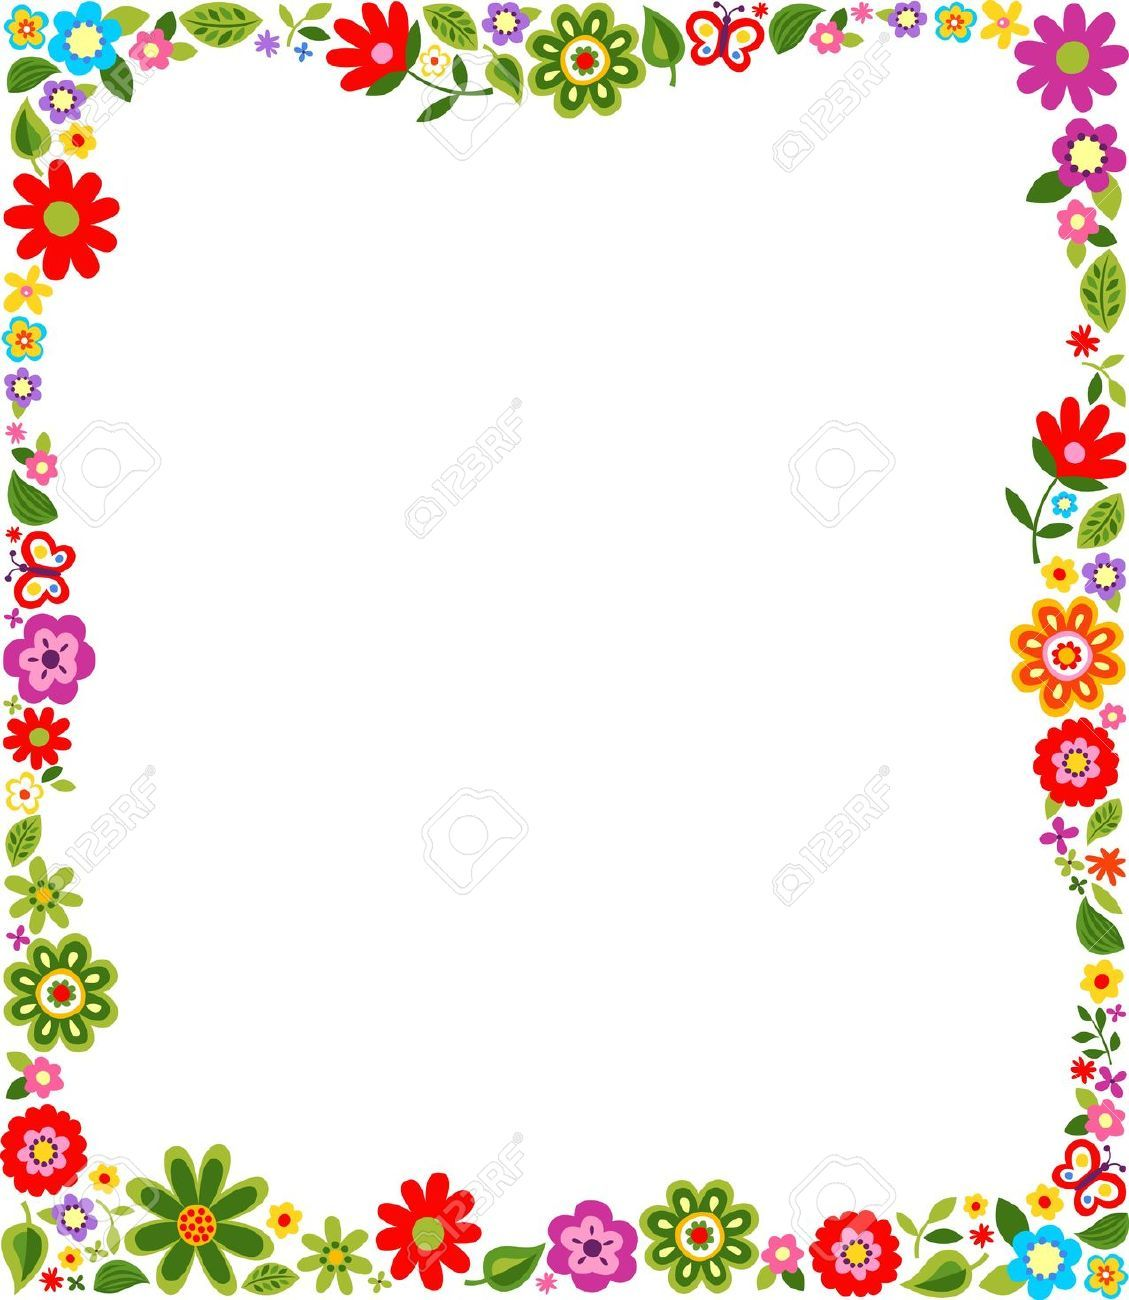 Daisy clipart frame. Lazy embroidery designs szukaj